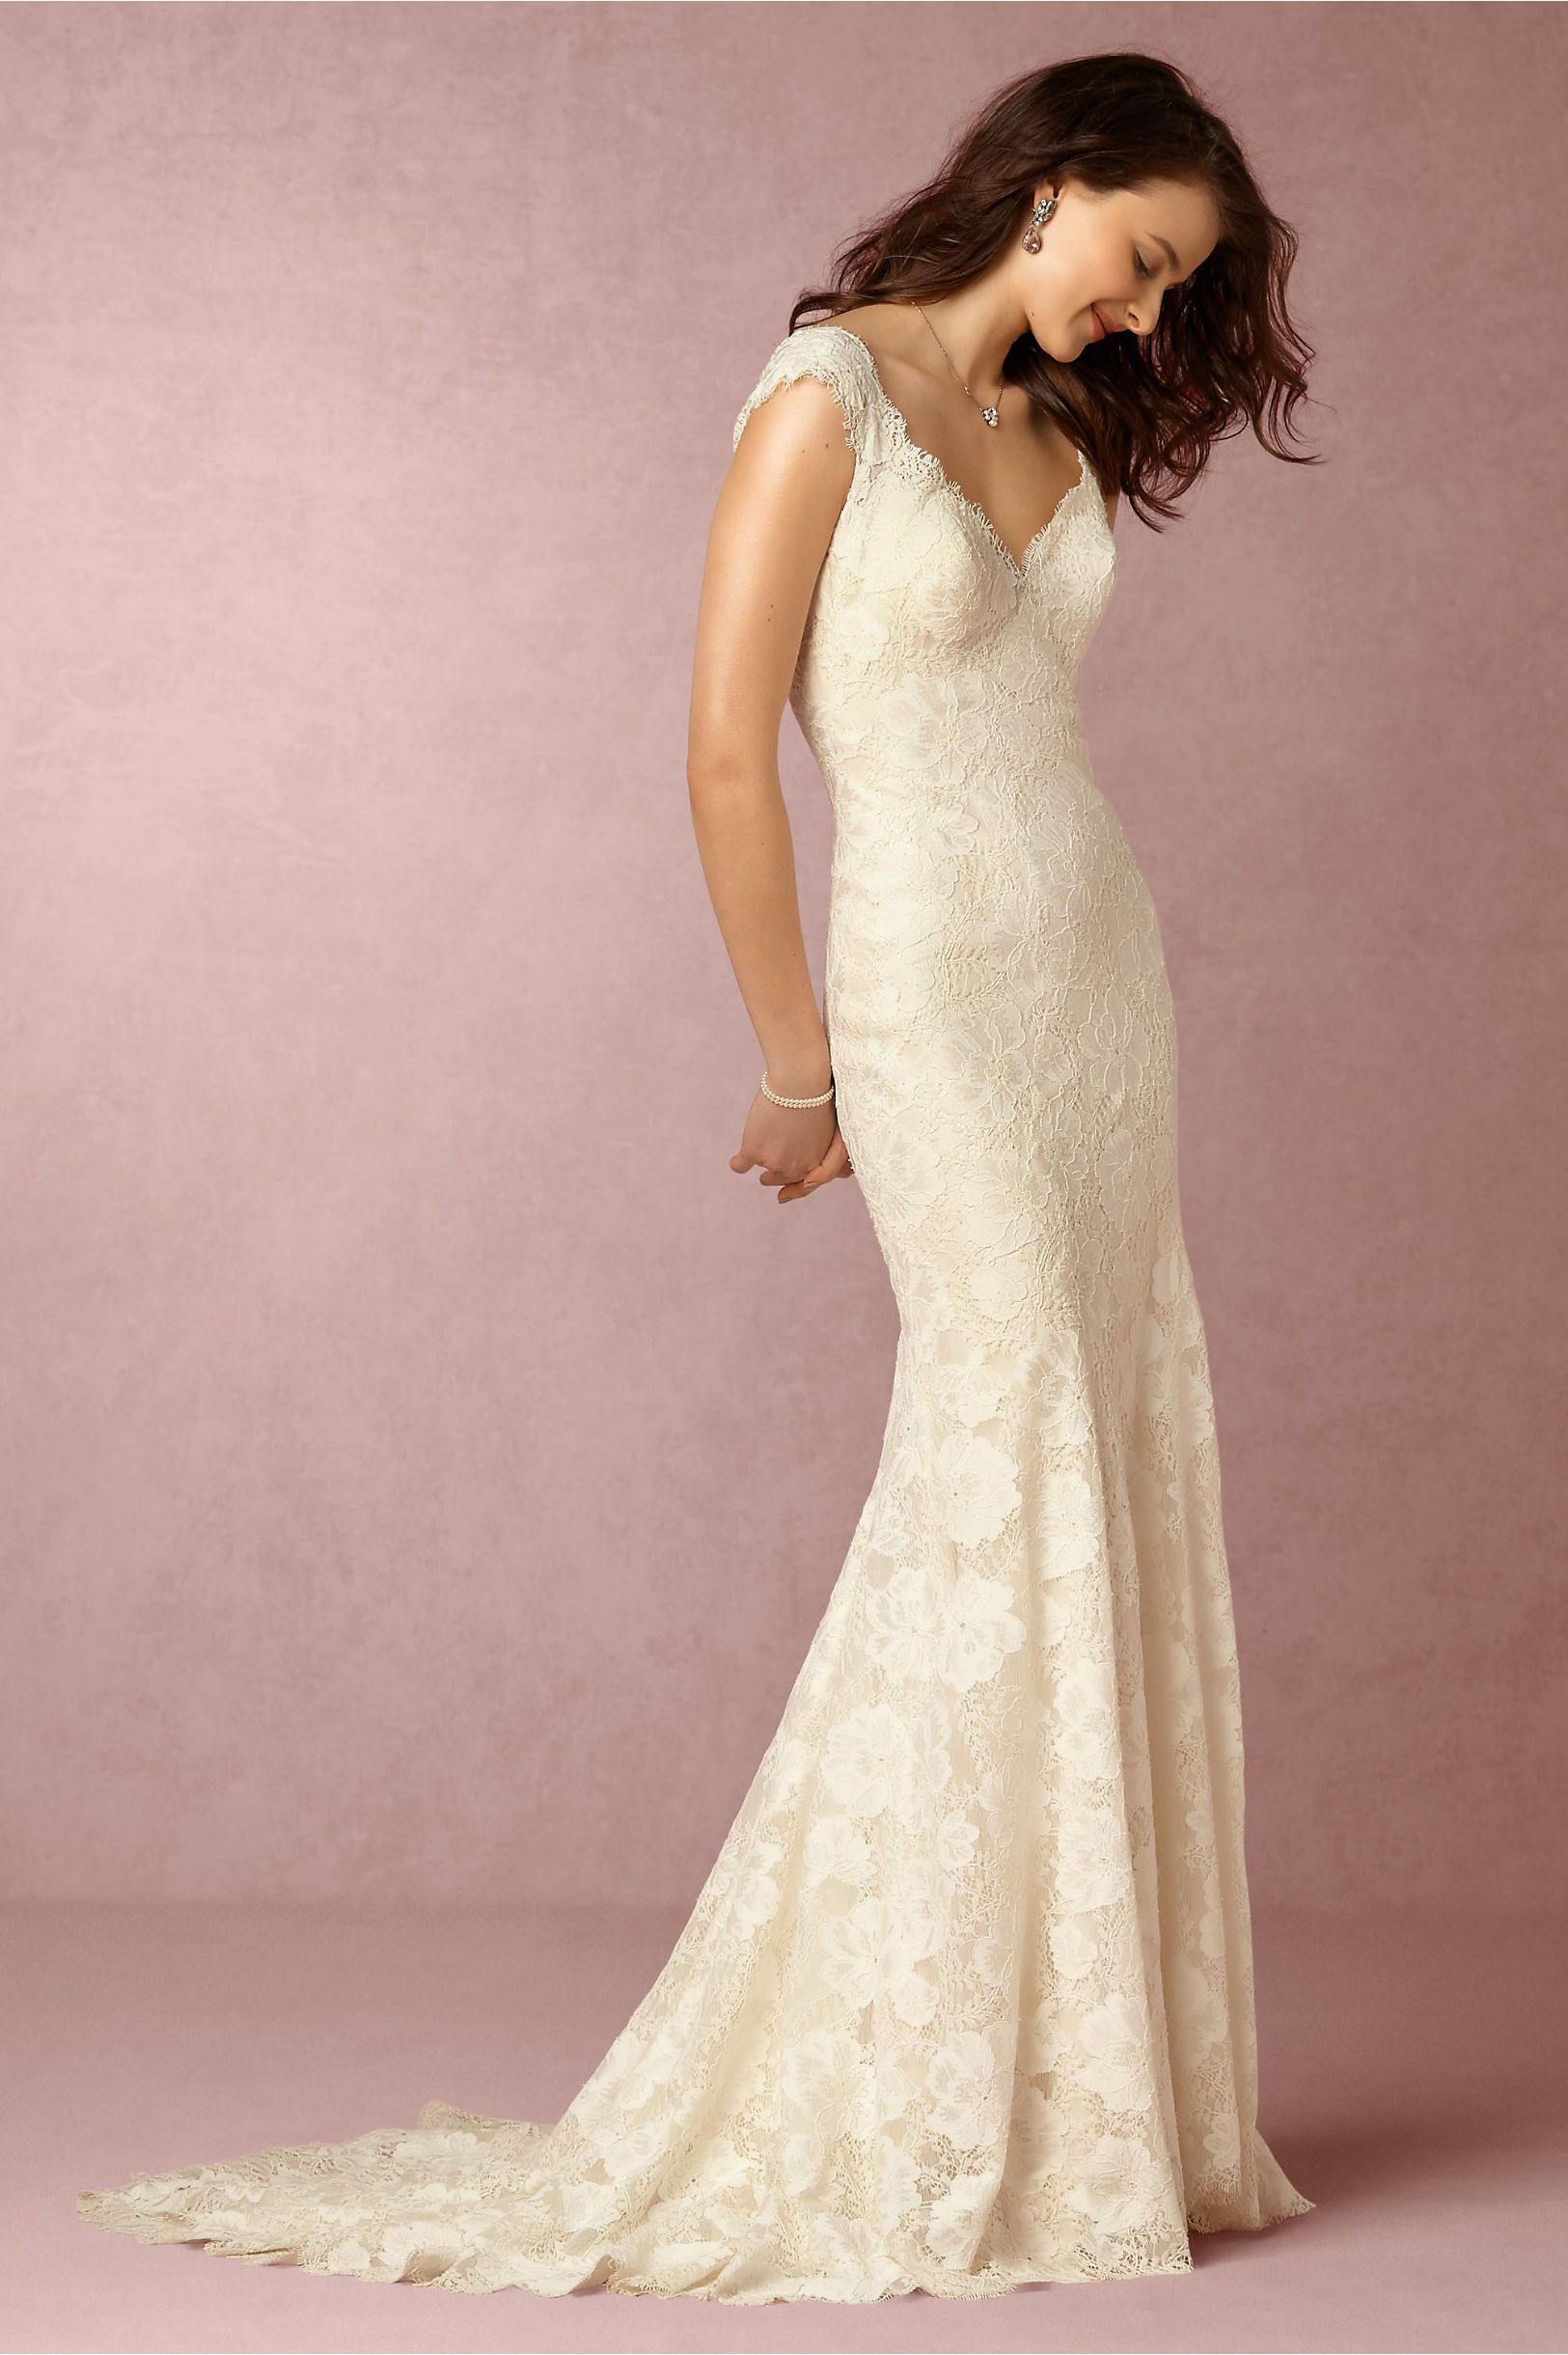 BHLDN Amalia Gown in New at BHLDN | Wedding Dress | Pinterest ...